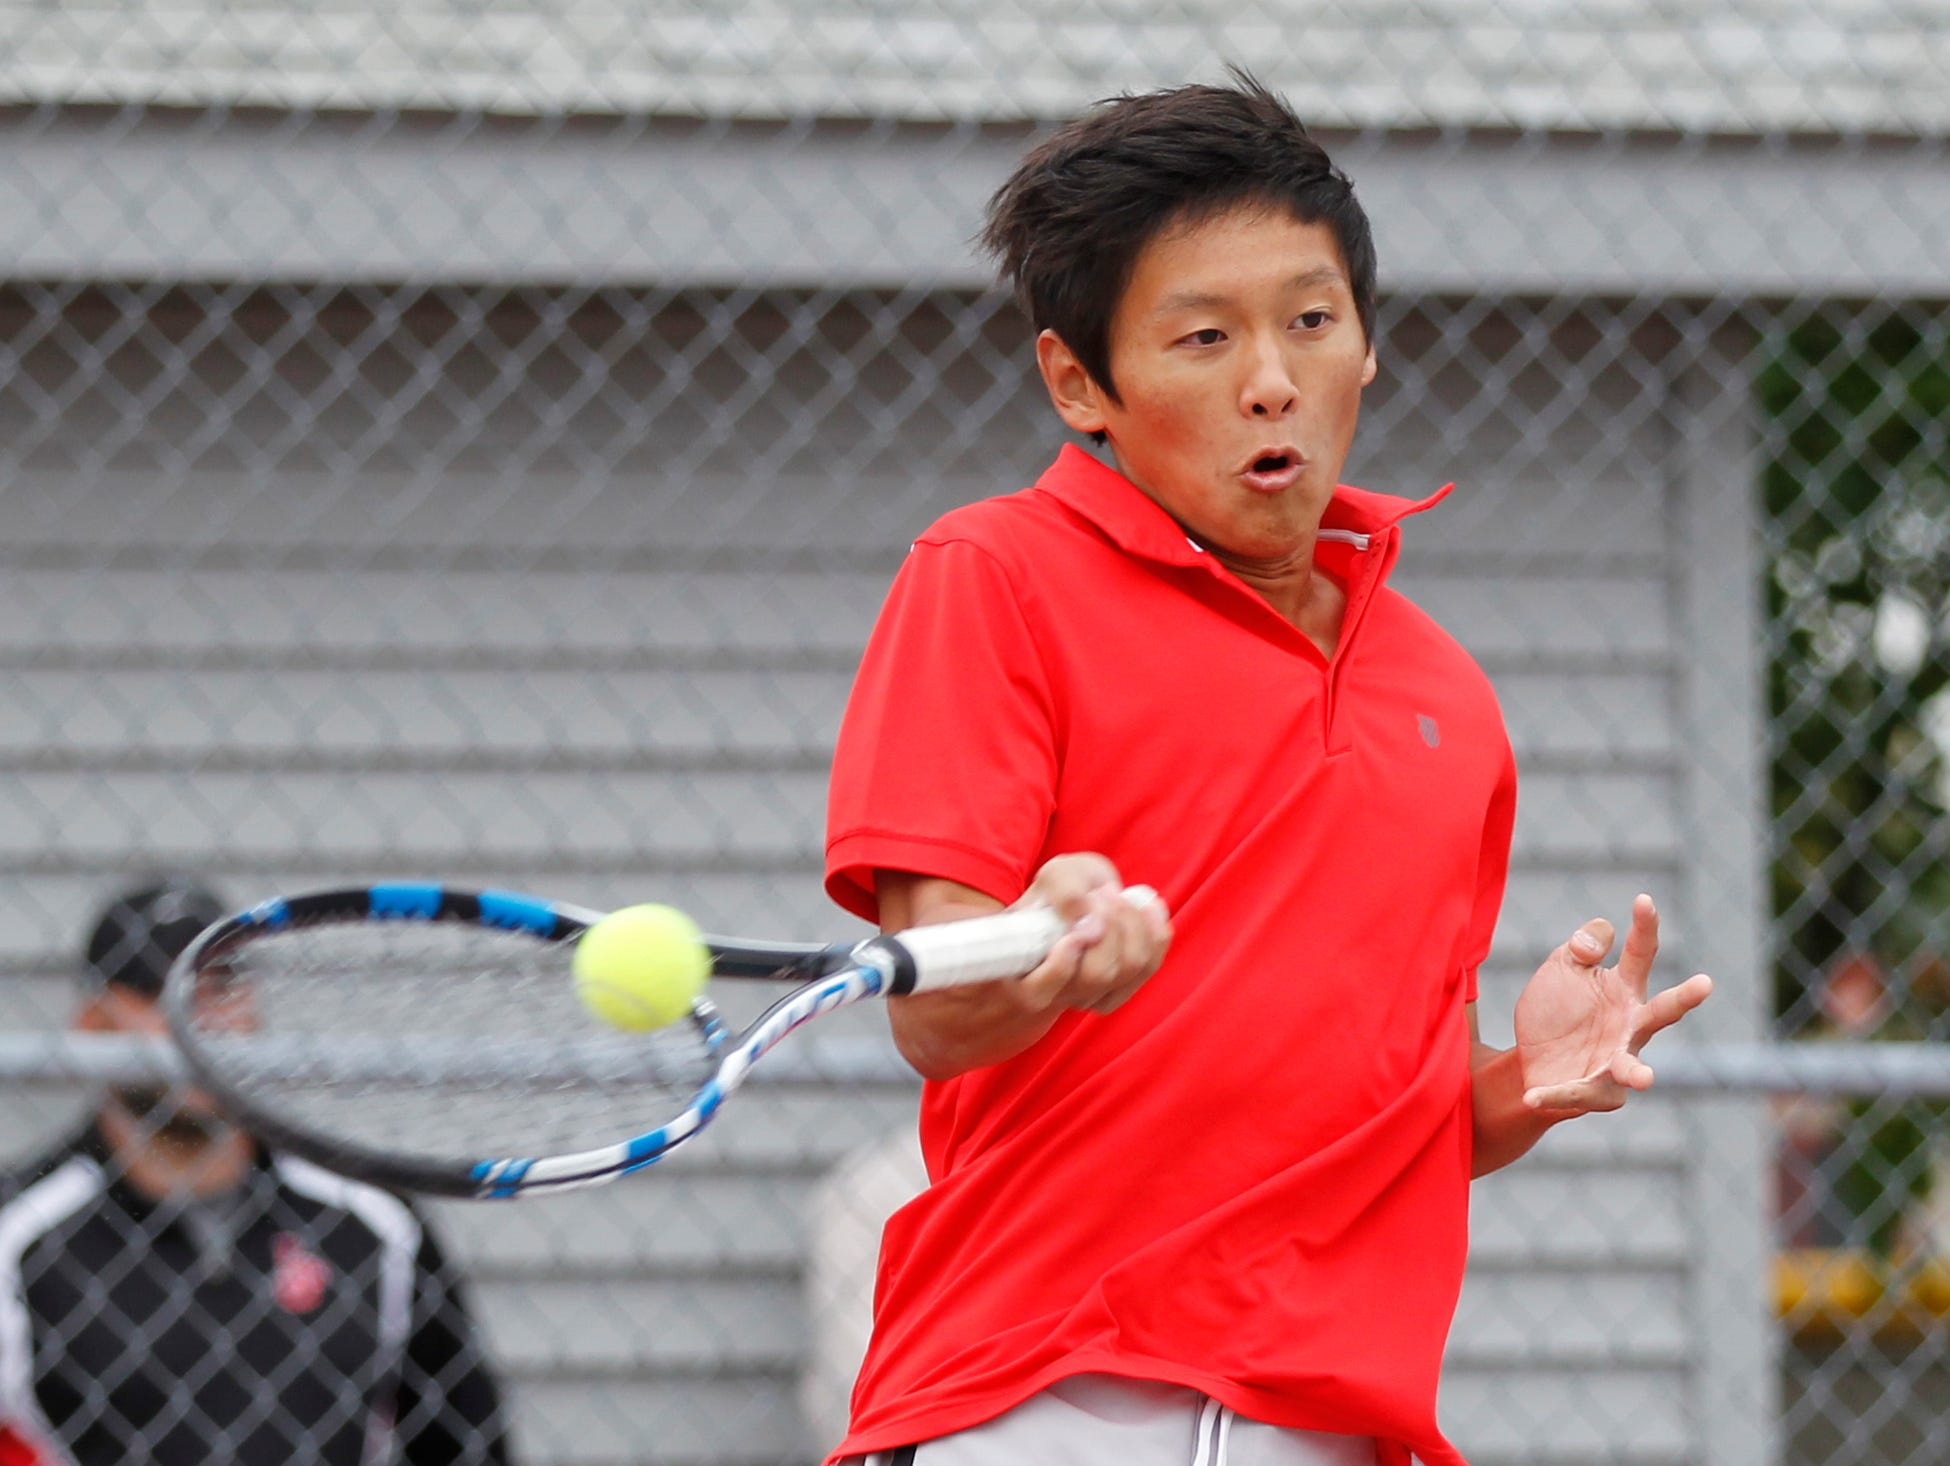 West Lafayette's Jethro Zhou with a return as he and Brian Mi take on Lafayette Jeff's Aden Beaver and Brayden Williams at No. 1 doubles during the boys tennis sectional championship Friday, October 2, 2015, at Cumberland Courts in West Lafayette.